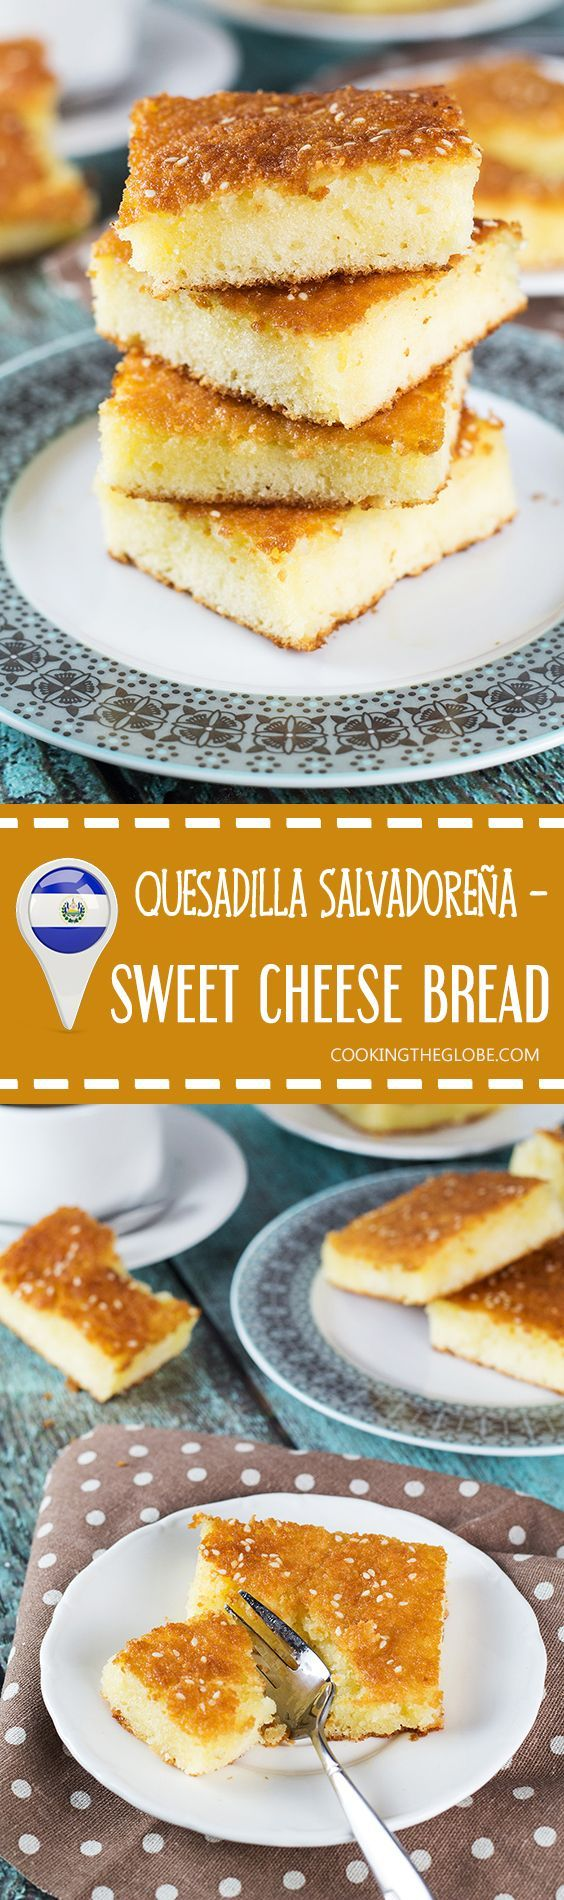 Quesadilla Salvadoreña - Salvadoran Sweet Cheese Bread